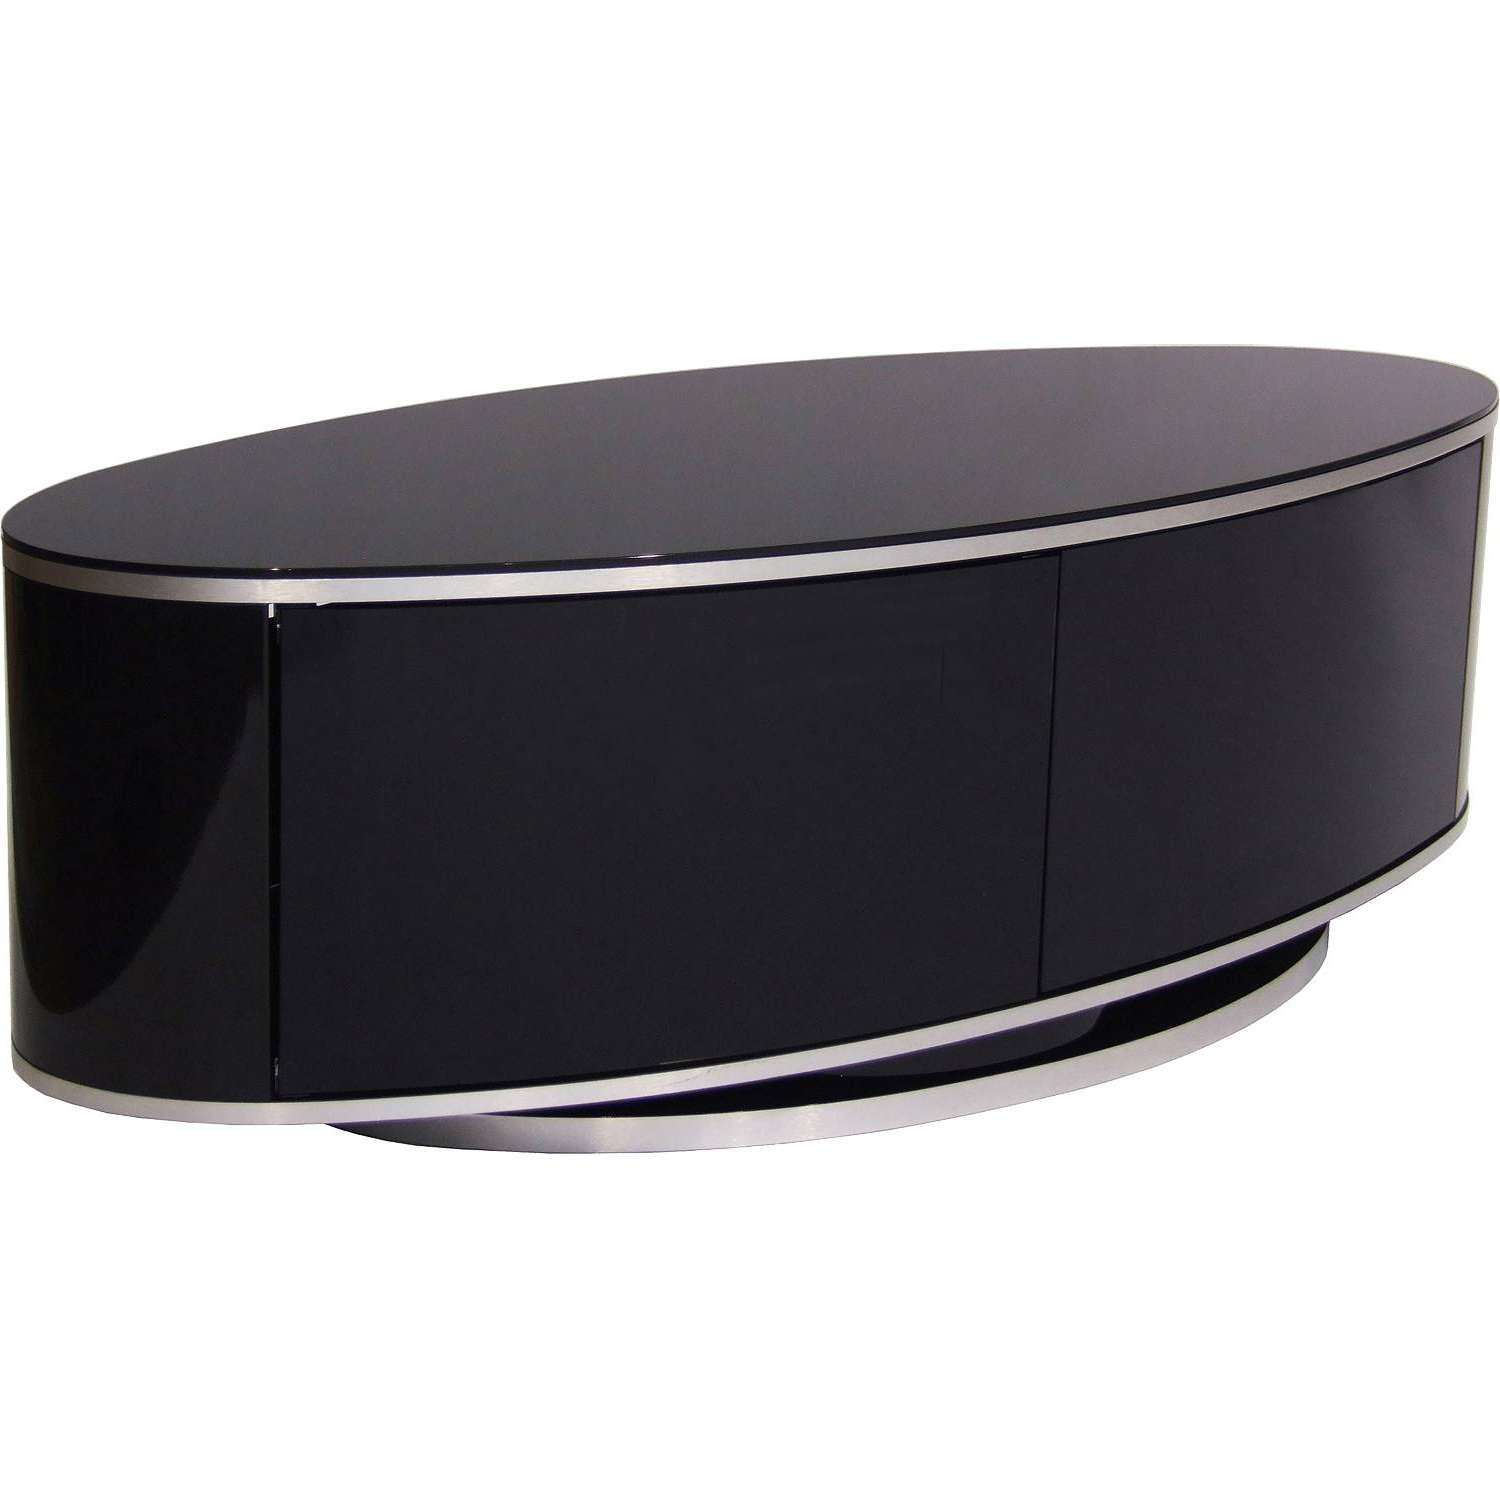 "Mda Designs Luna Av High Gloss Black Oval Tv Cabinet Up To 55"" Tvs With Black Oval Tv Stands (View 7 of 15)"